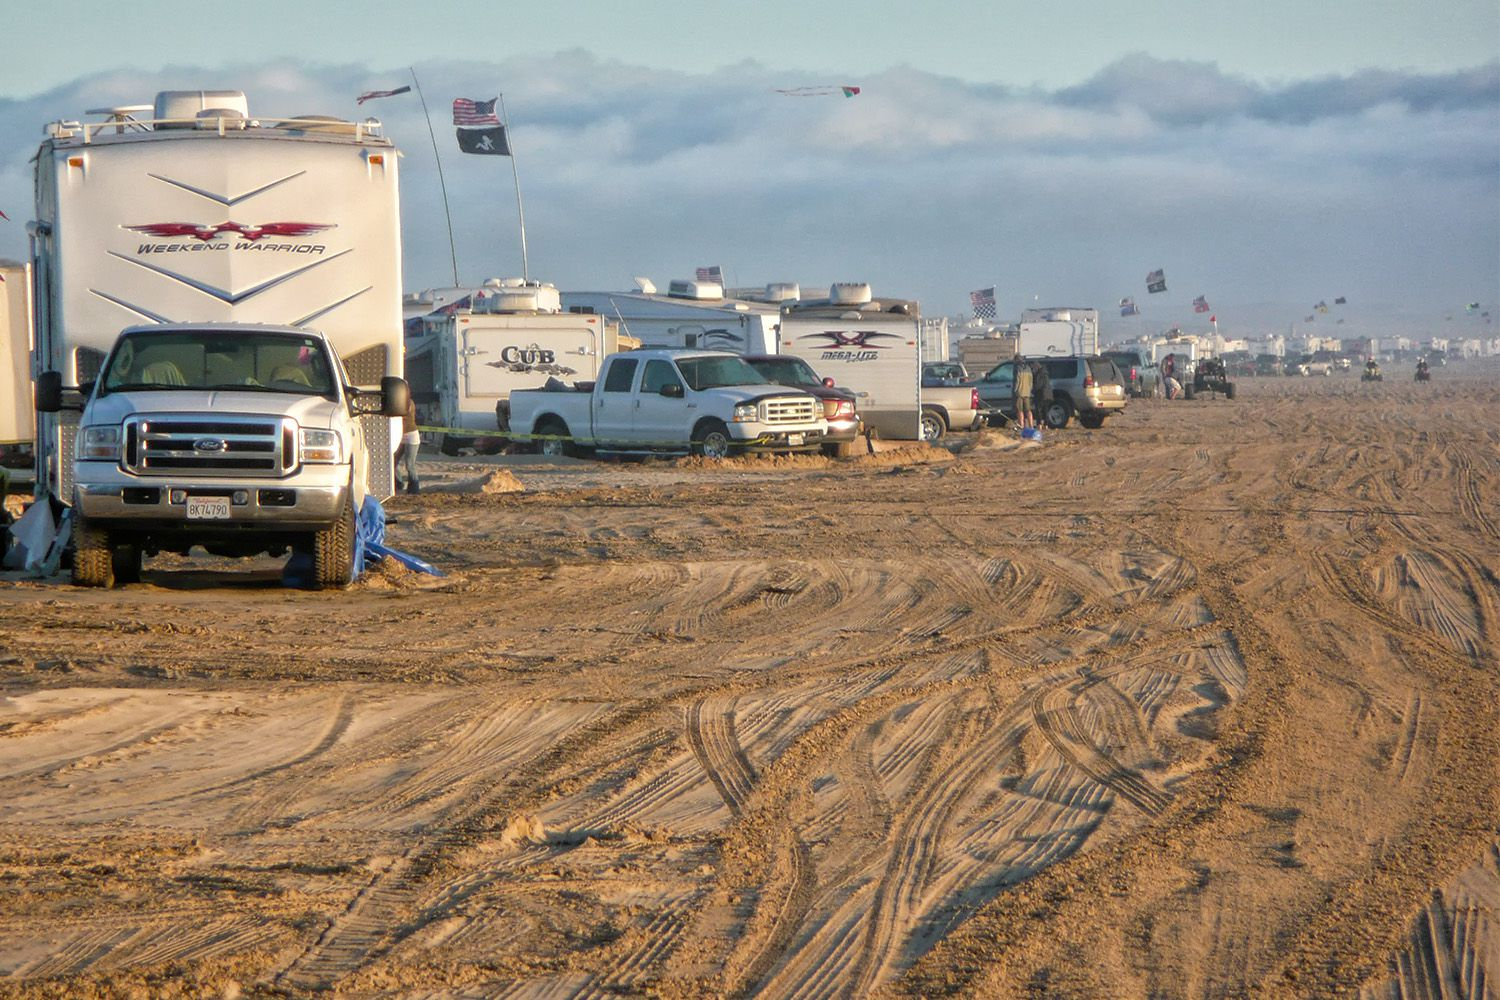 Camping By The Sea At Pismo Beach